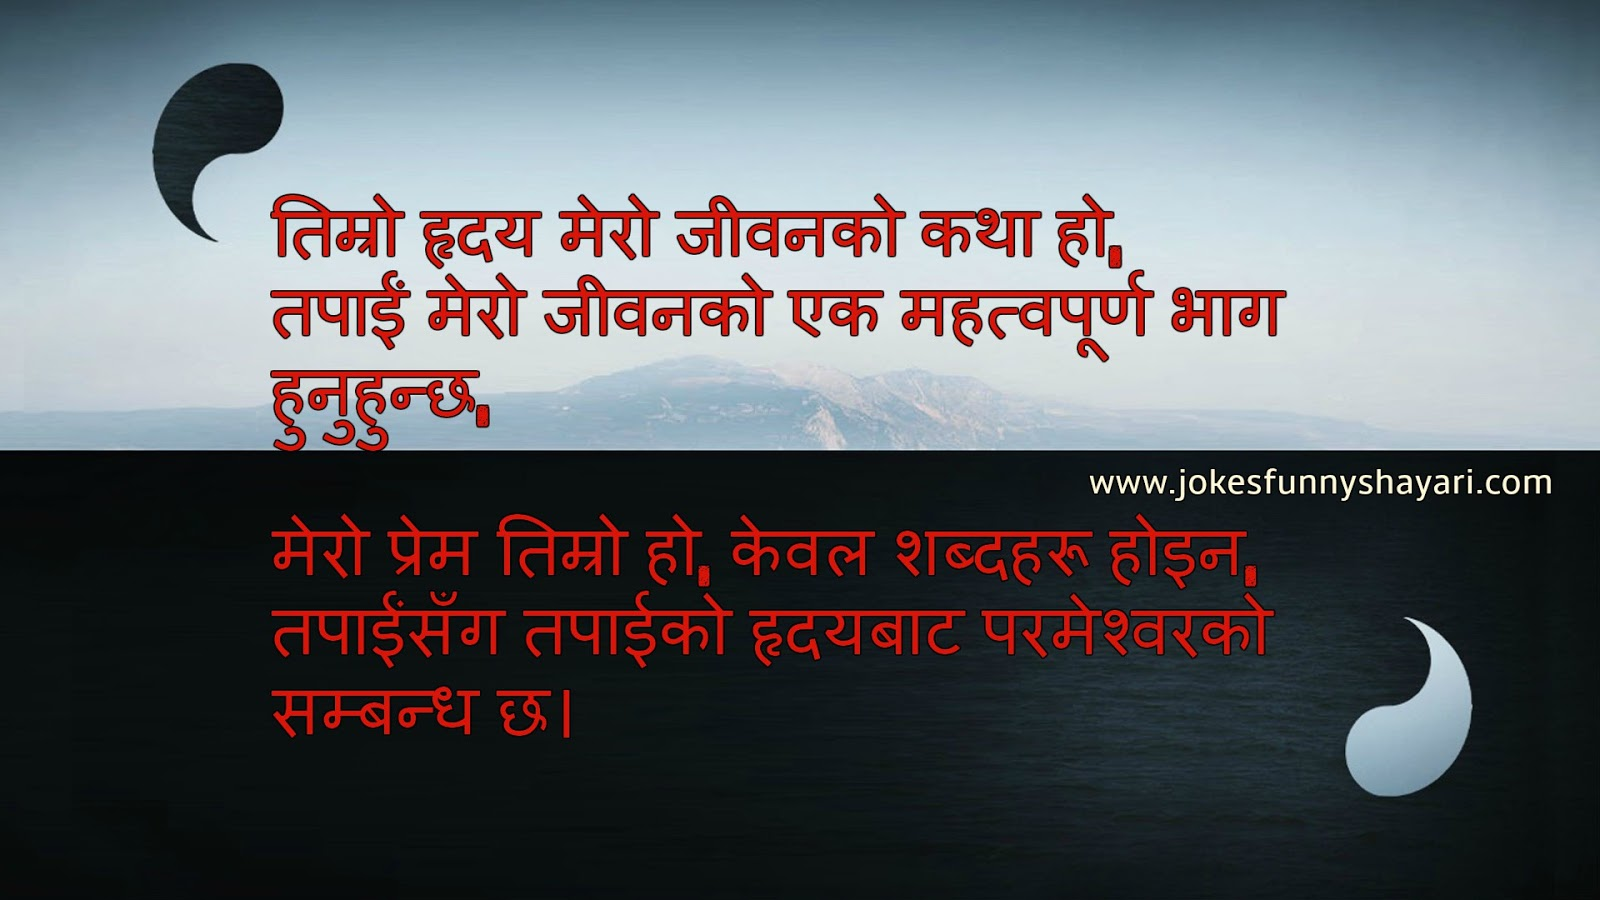 Jokes funny shayari romantic love shayari! image download !facebook